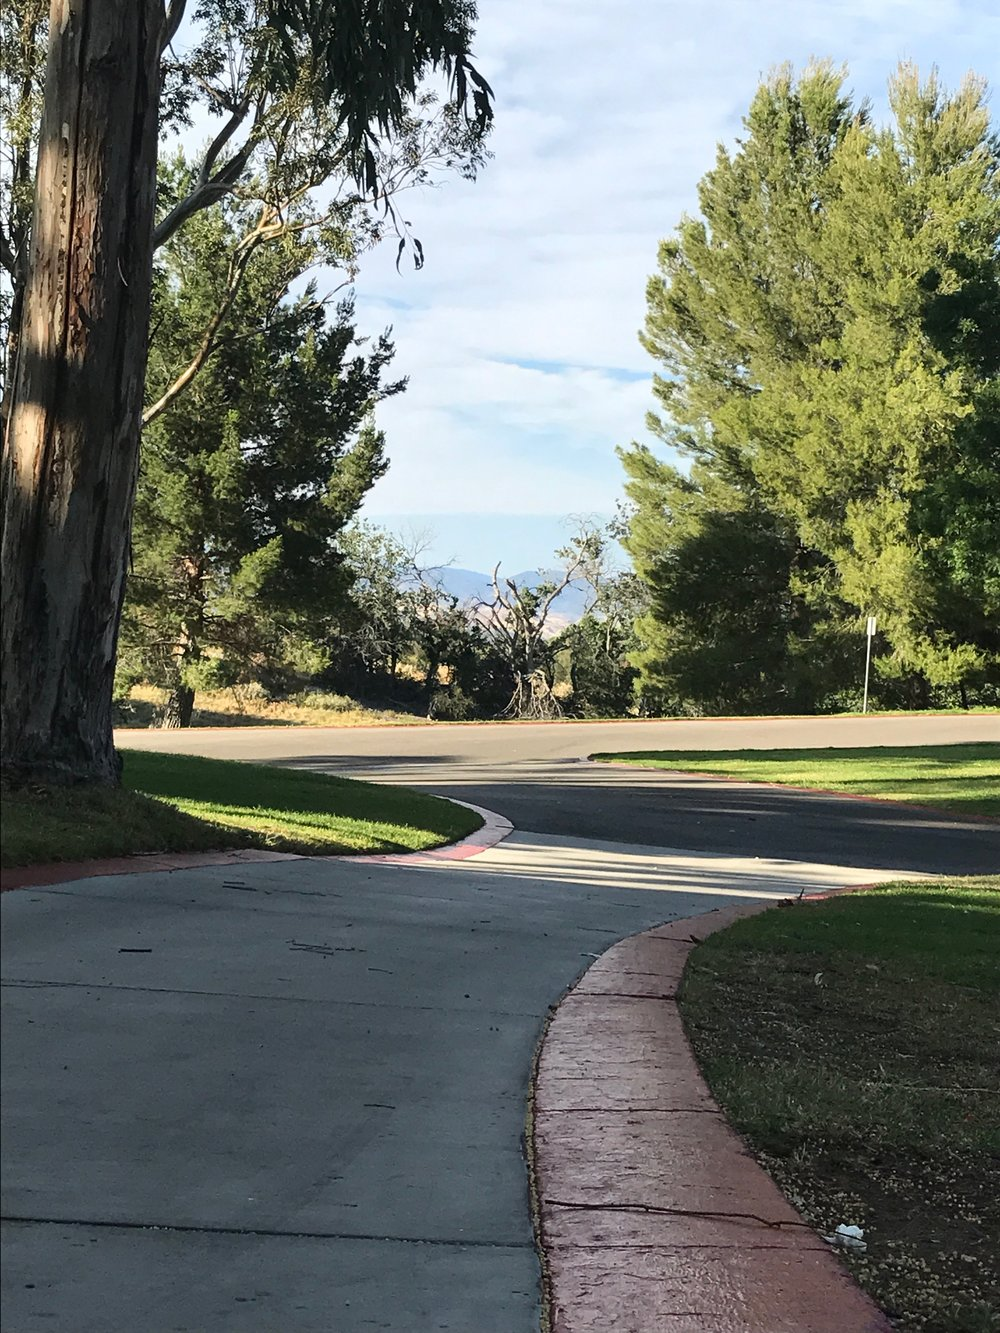 A 30 minute silent walk around the grounds of CalArts meditating on my question.